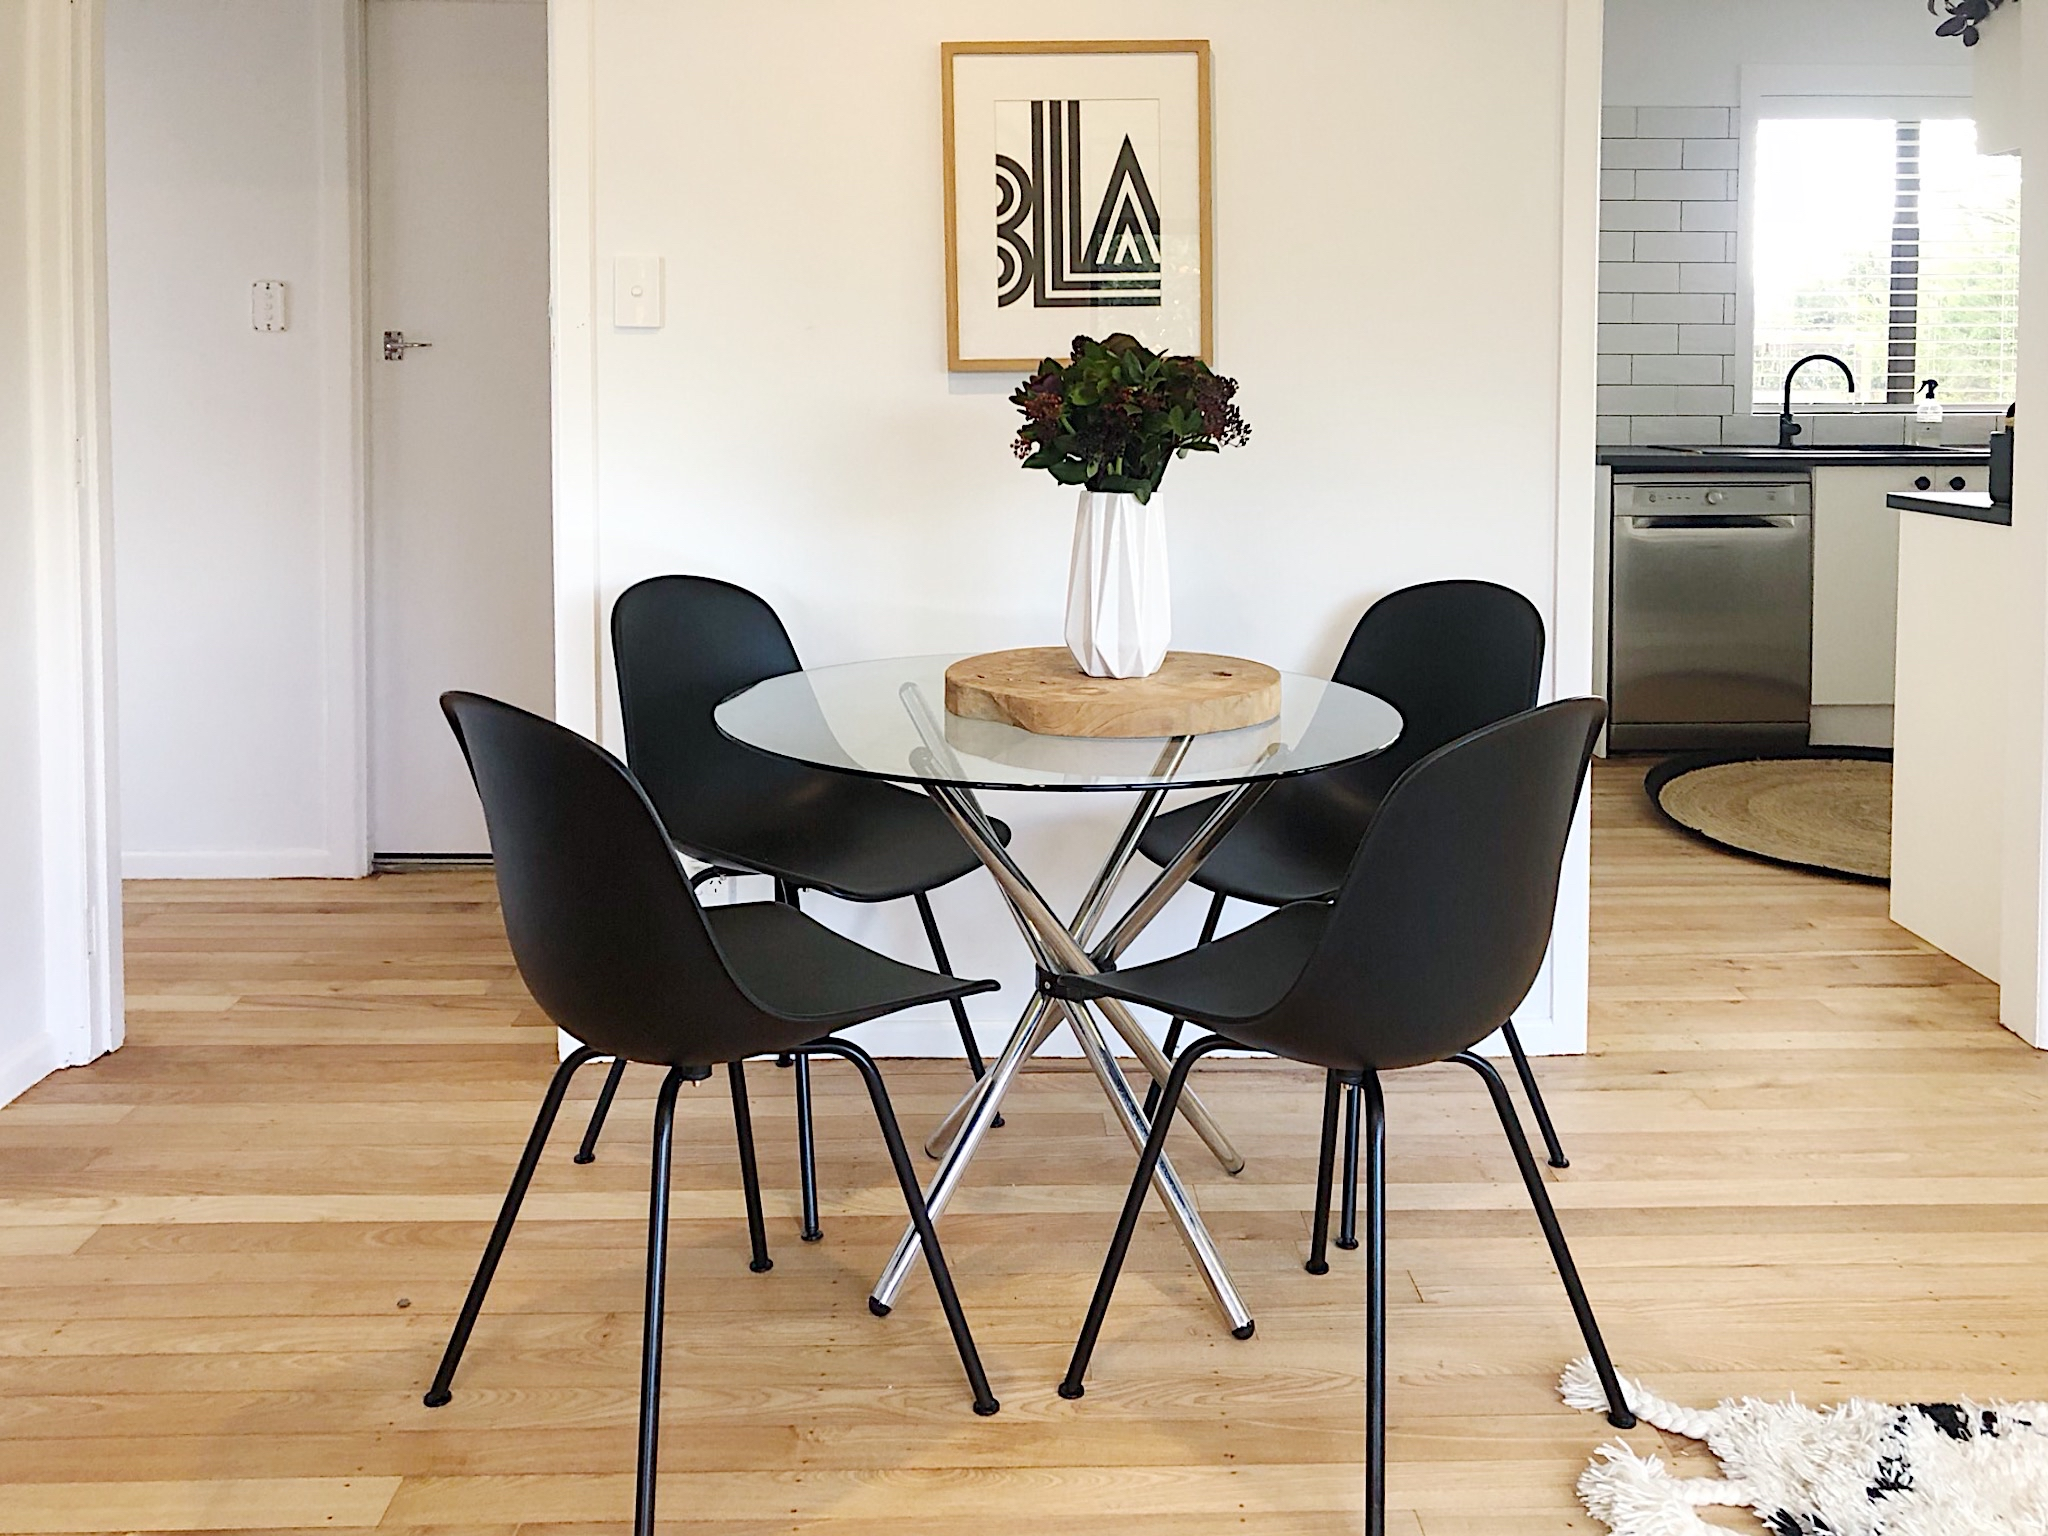 Pearson + Project The Reno Race The Rookies Lounge Tawa Floor Small Space Dining Space Round Table Black Chairs.jpg